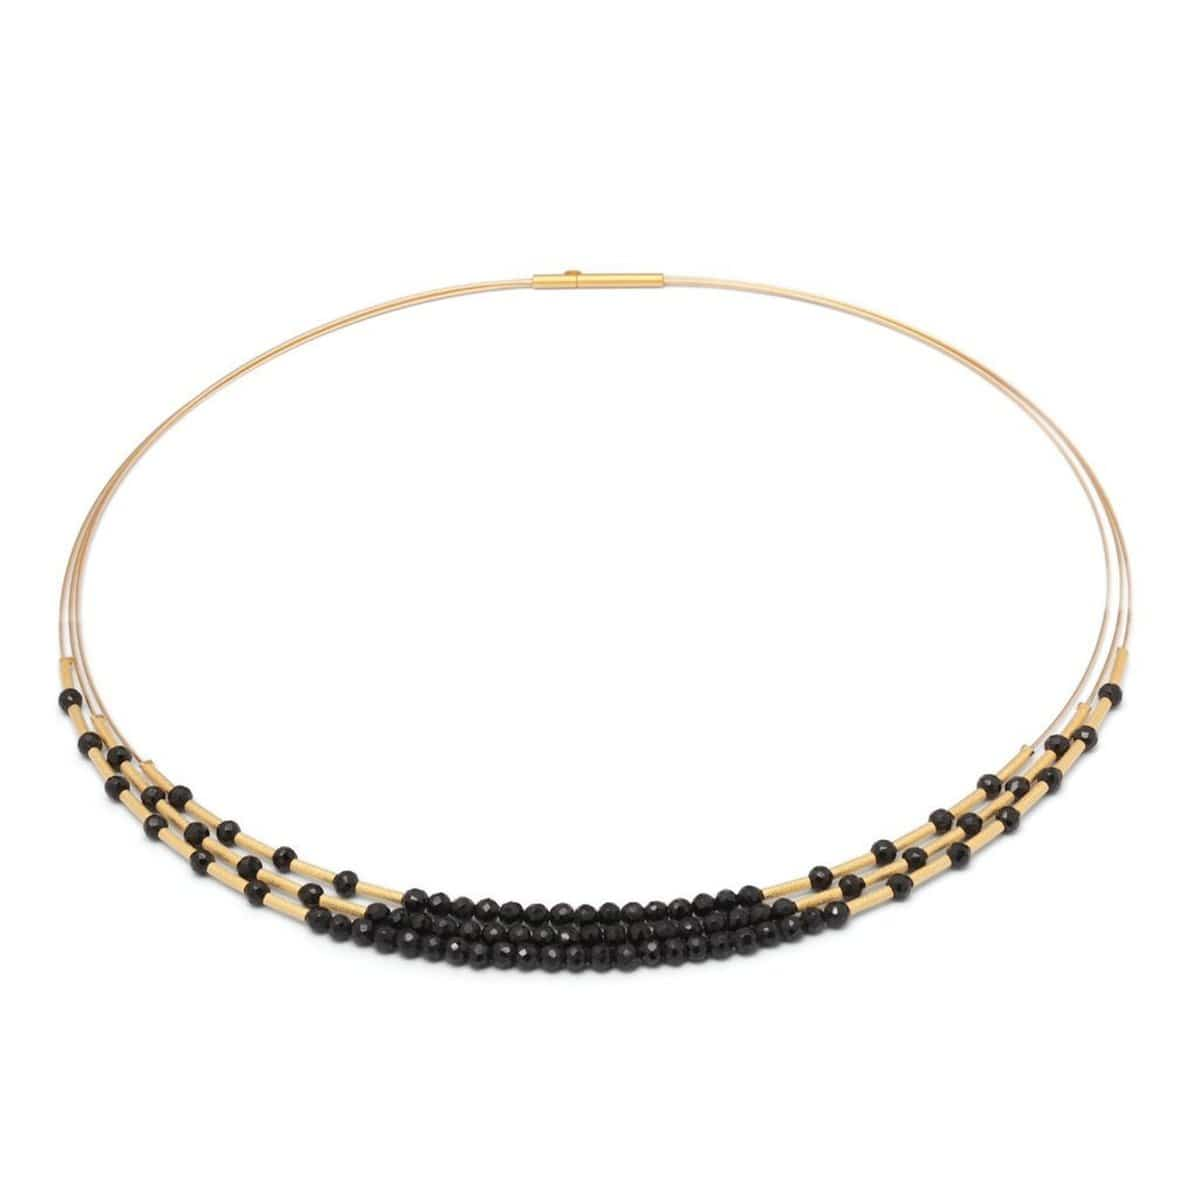 Clema Black Spinel Necklace - 85219496-Bernd Wolf-Renee Taylor Gallery